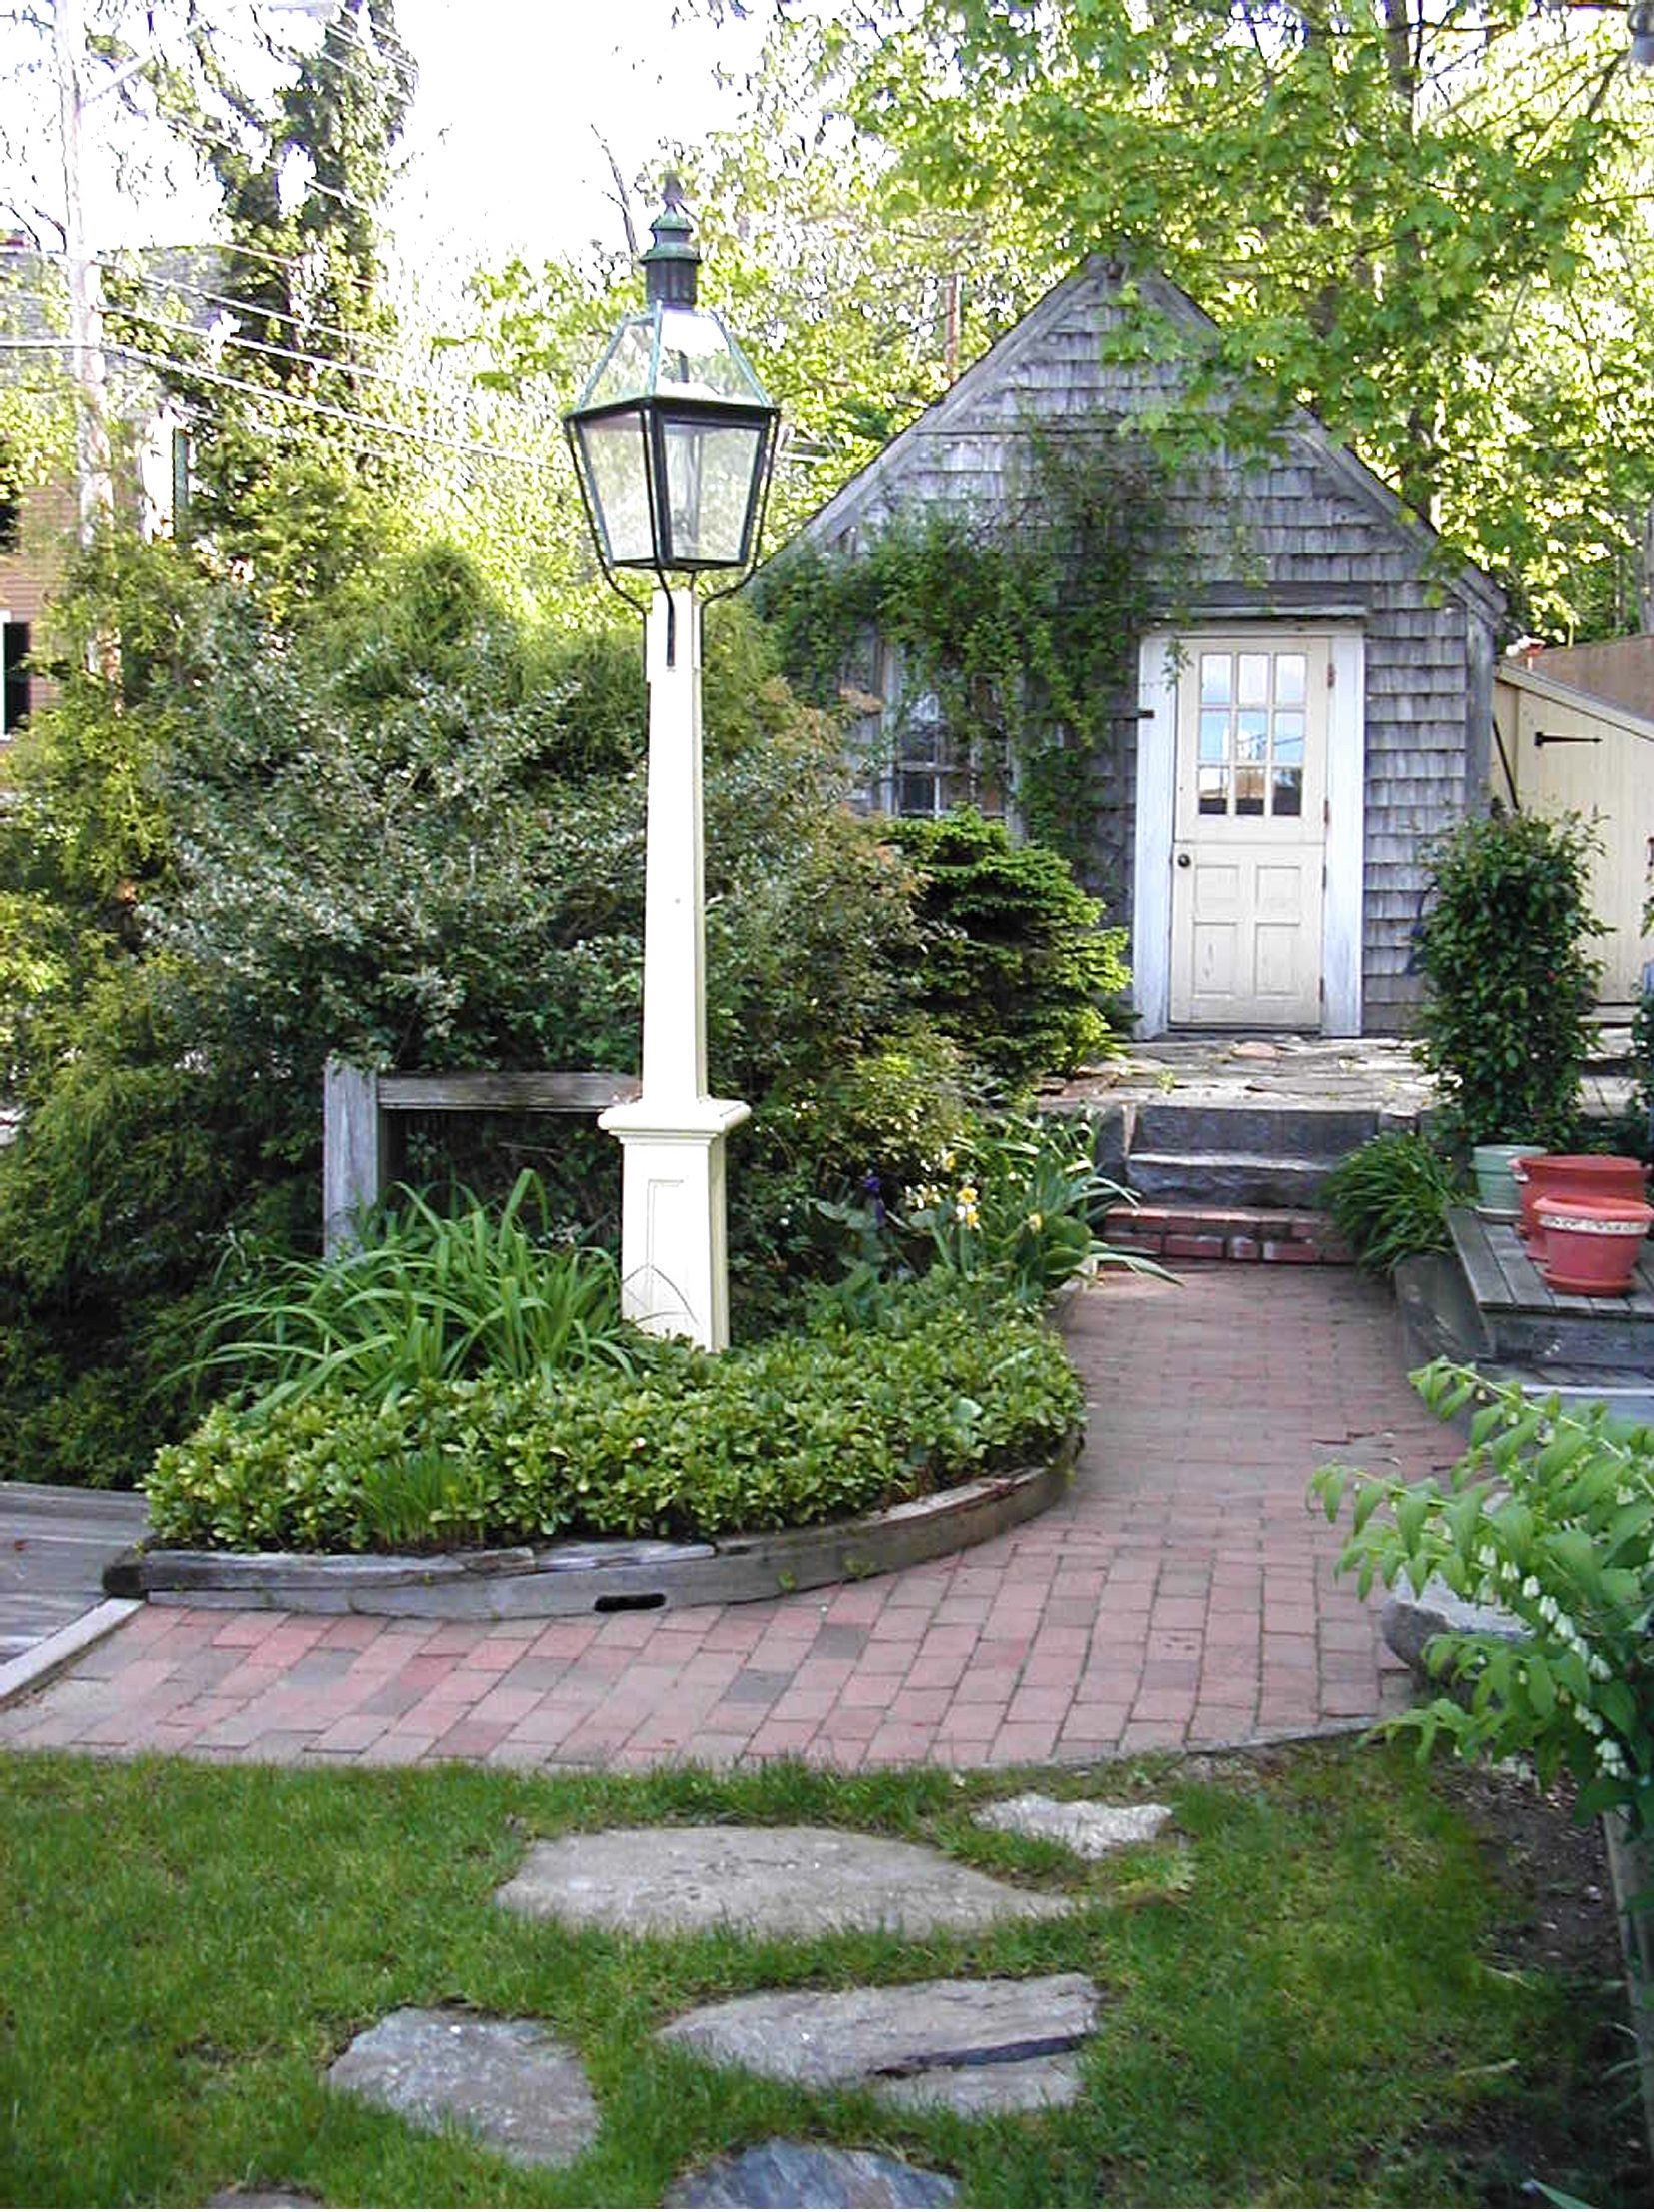 Light Post Landscaping Ideas Part - 45: This Antique Oil Lampu0027s Post Becomes The Center Point